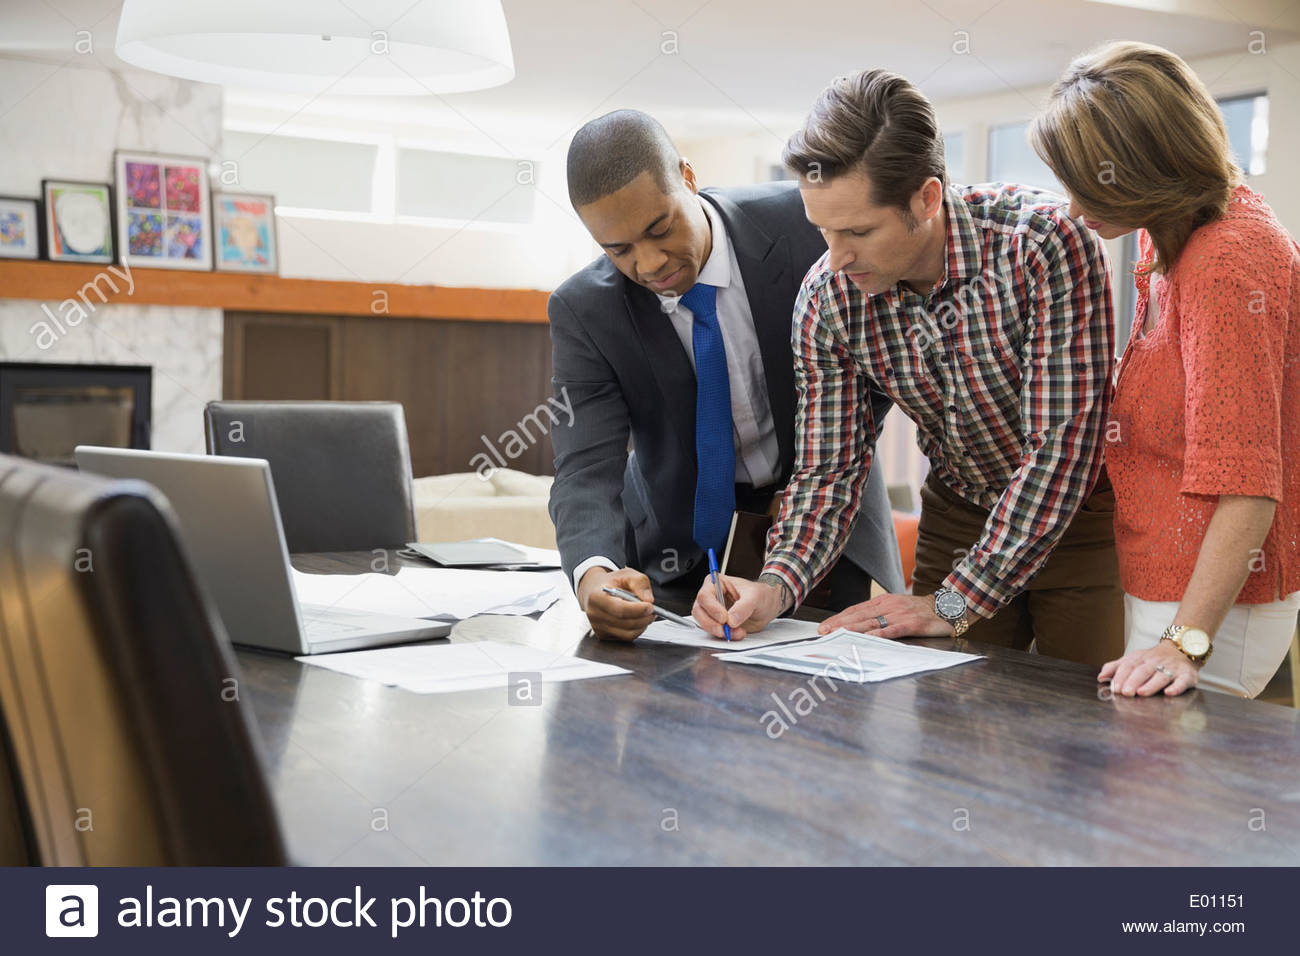 Couple signing documents for financial advisor Stock Photo